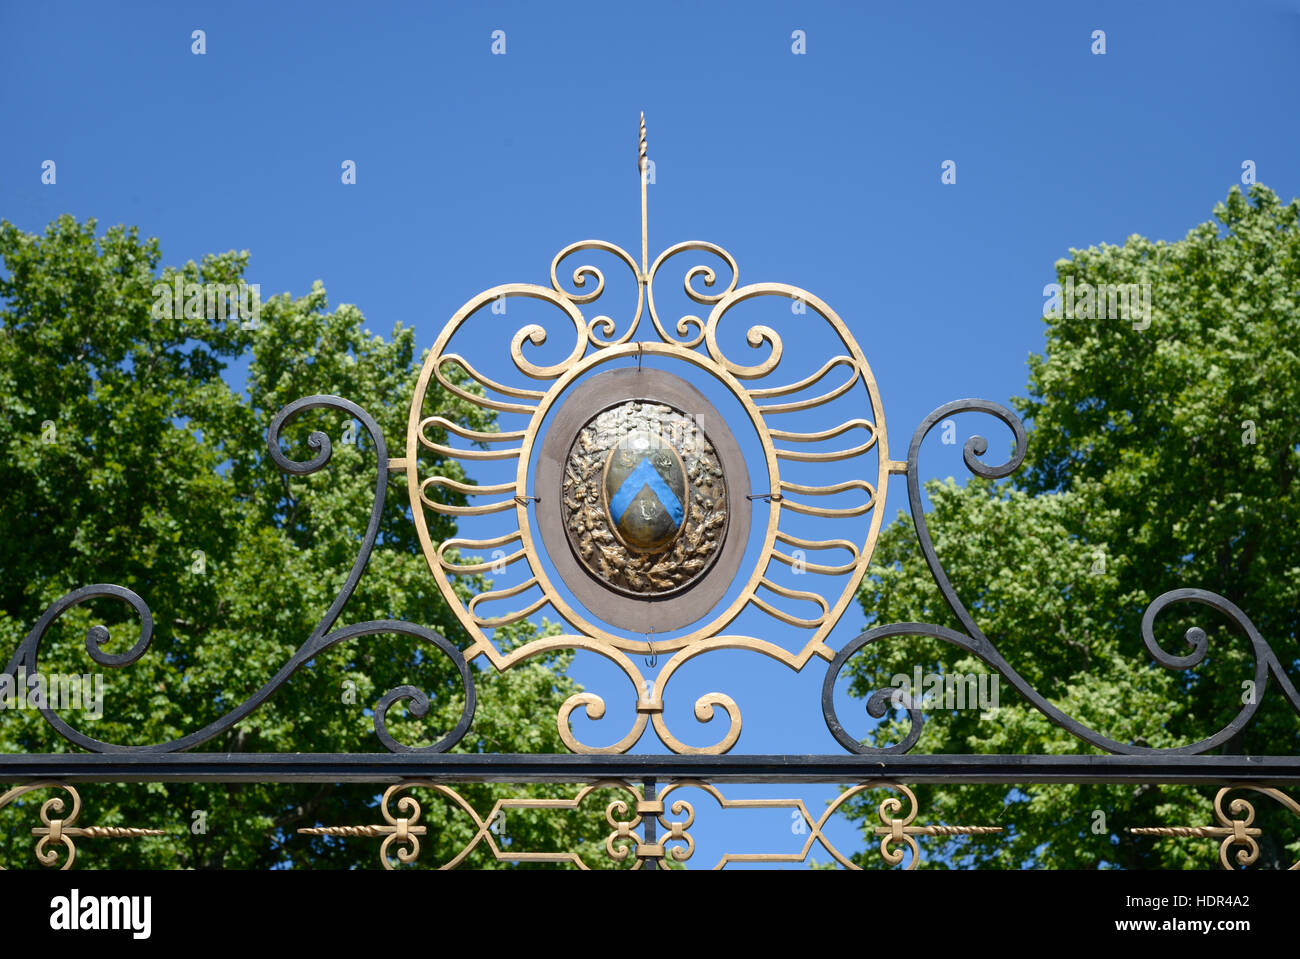 Coat of Arms or Heraldry Symbol at the Entrance Gate to the c18th Château de Sauvan Mane, near Forcalquier, - Stock Image